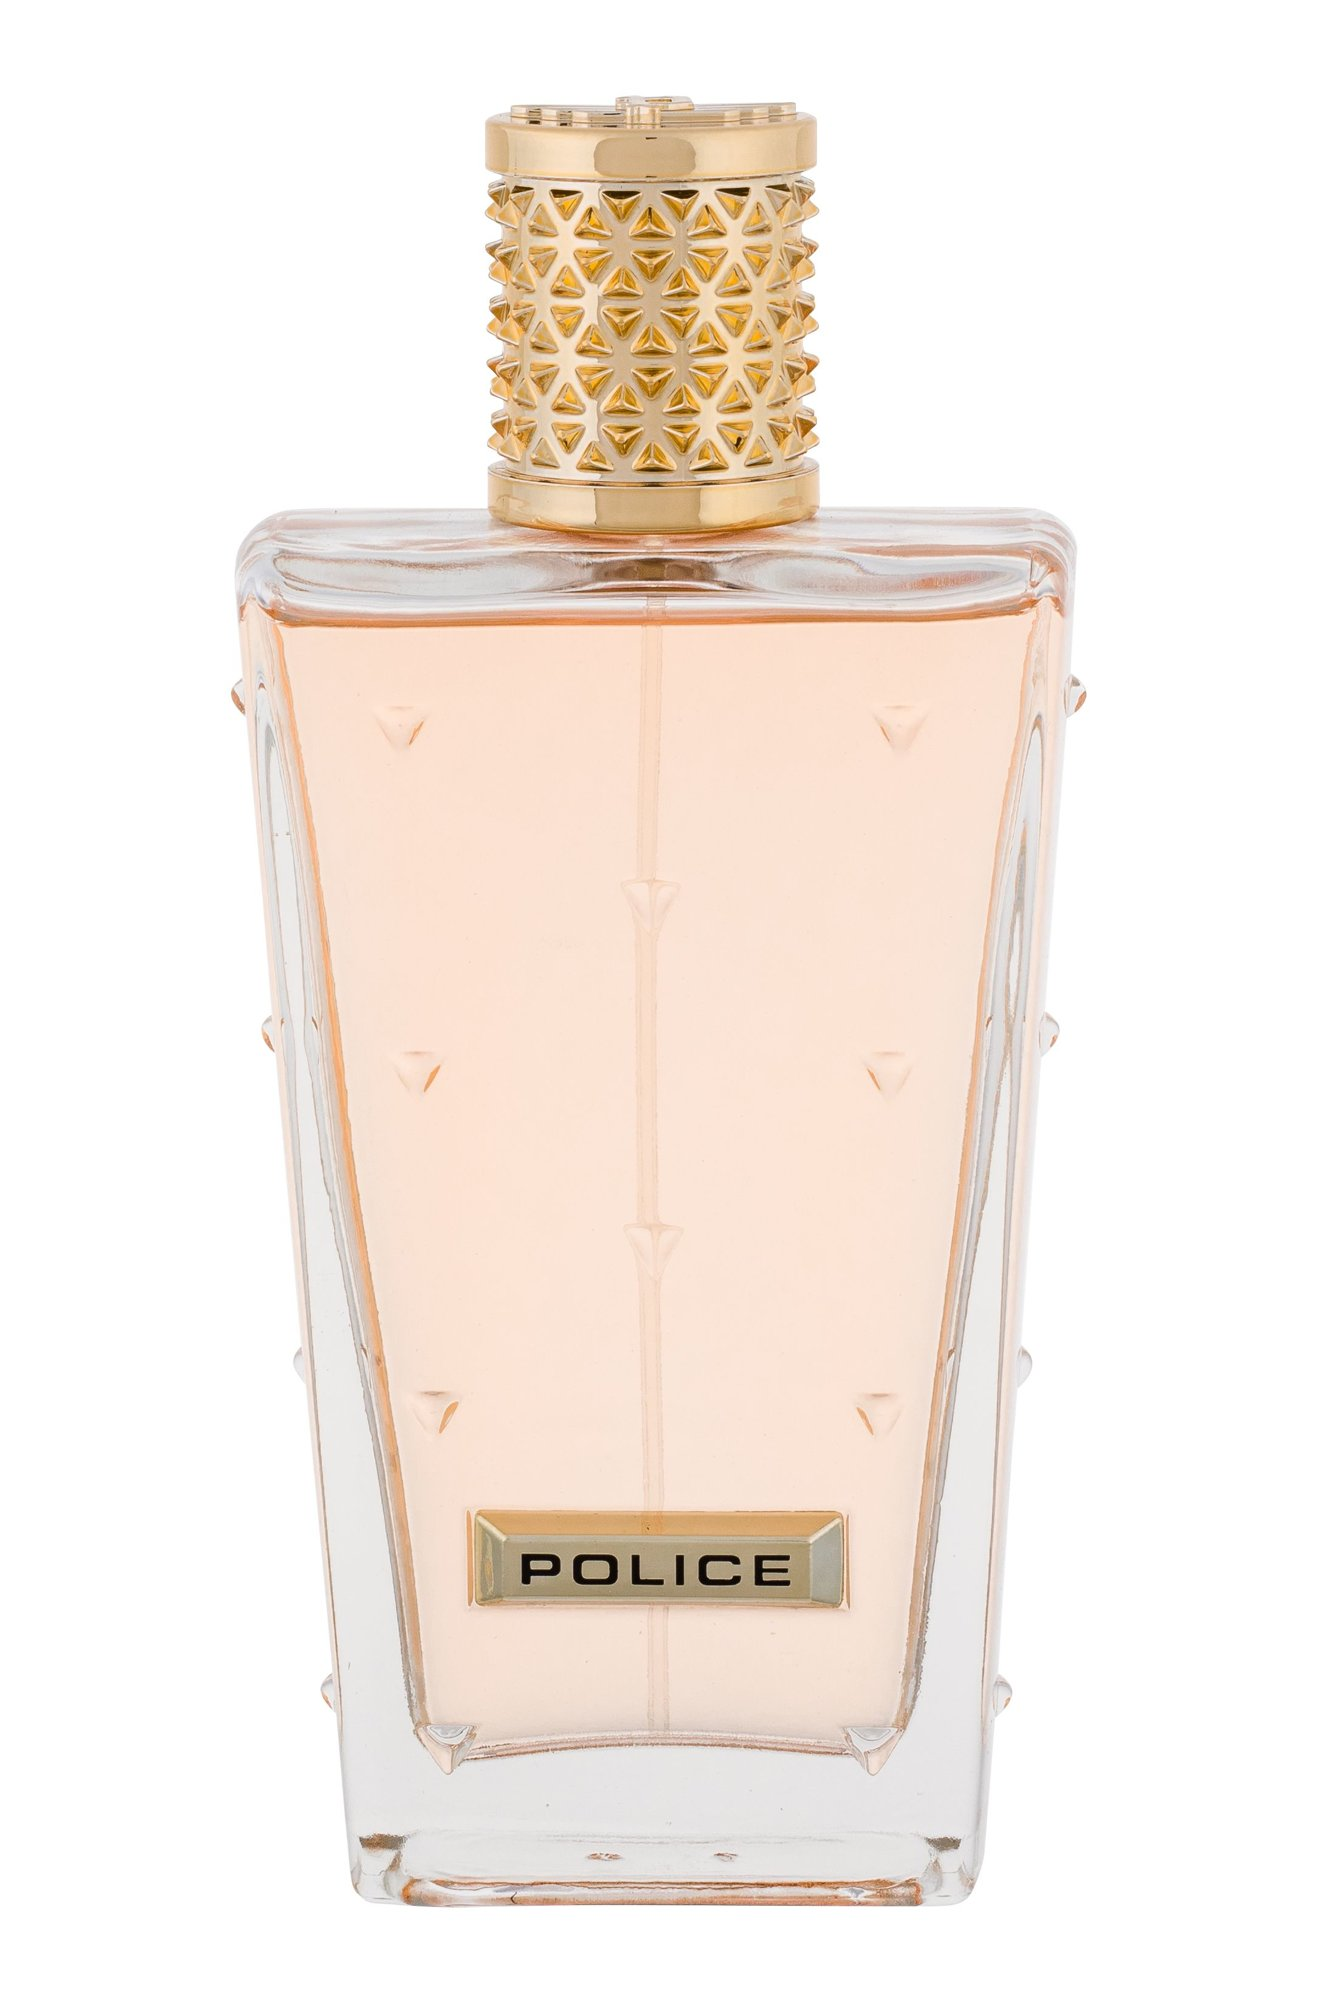 Police Legend for Woman Eau de Parfum 100ml